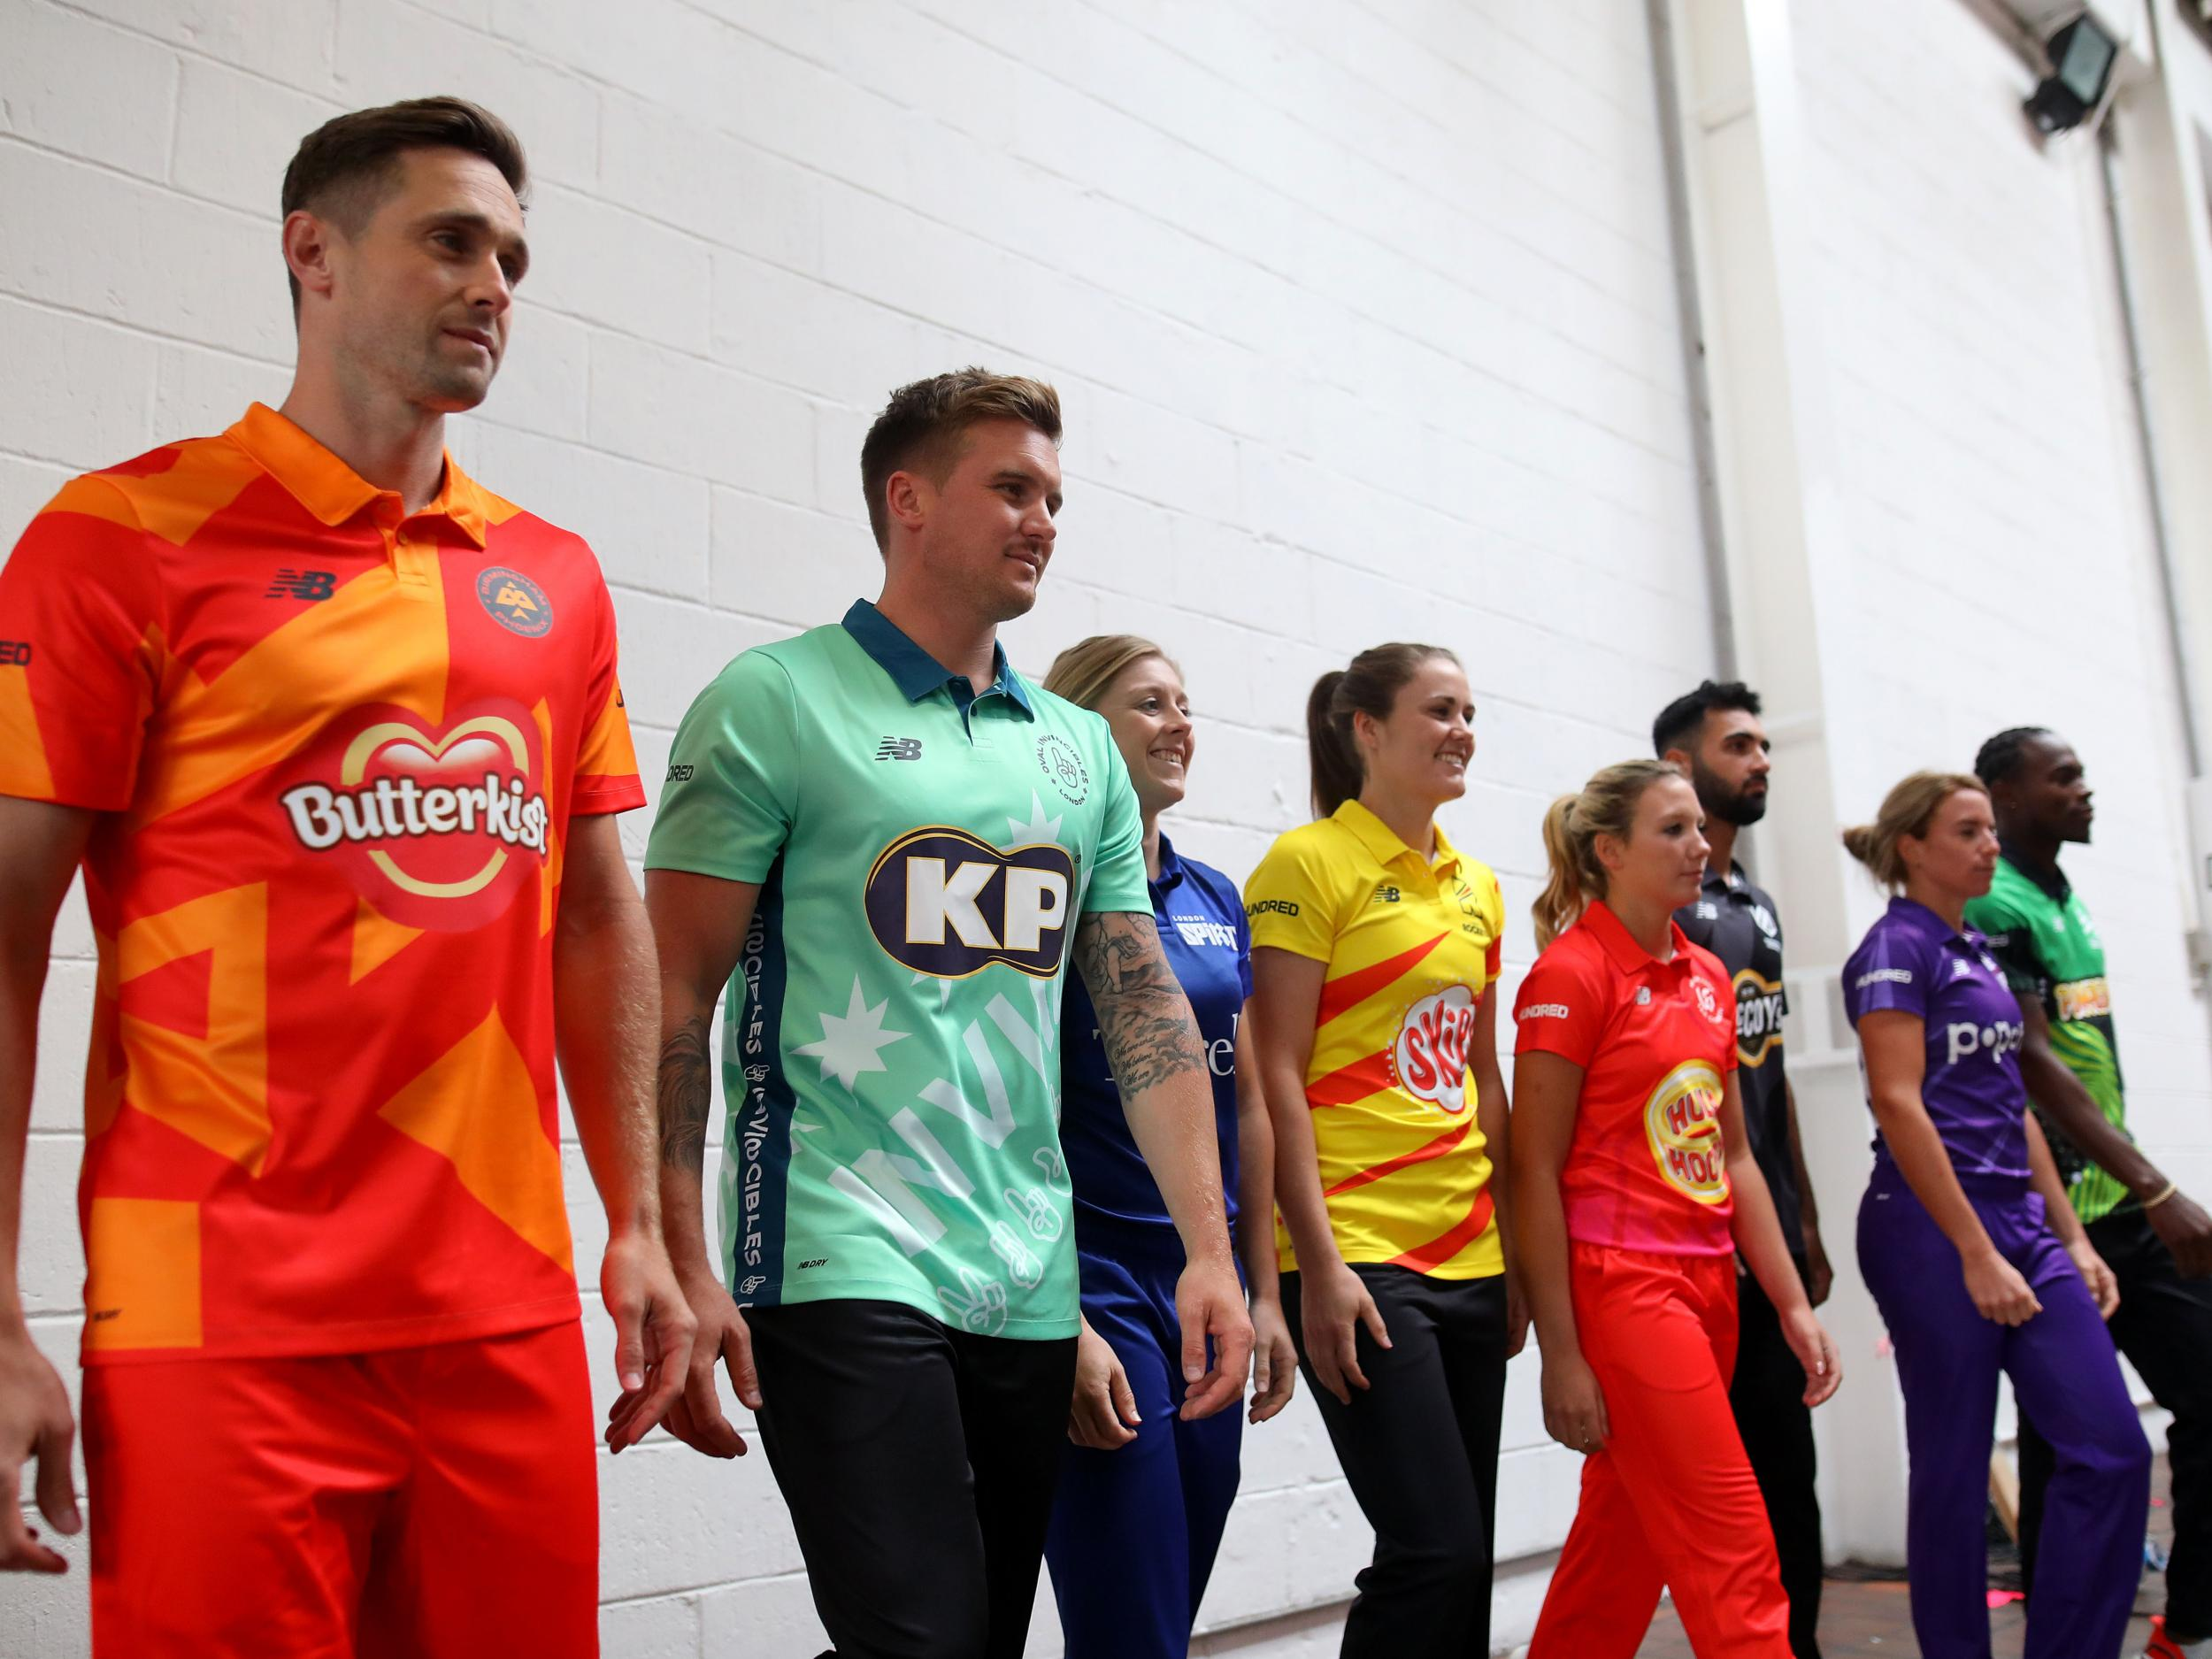 The Hundred draft 2019: When is it, where to watch and how does it work?